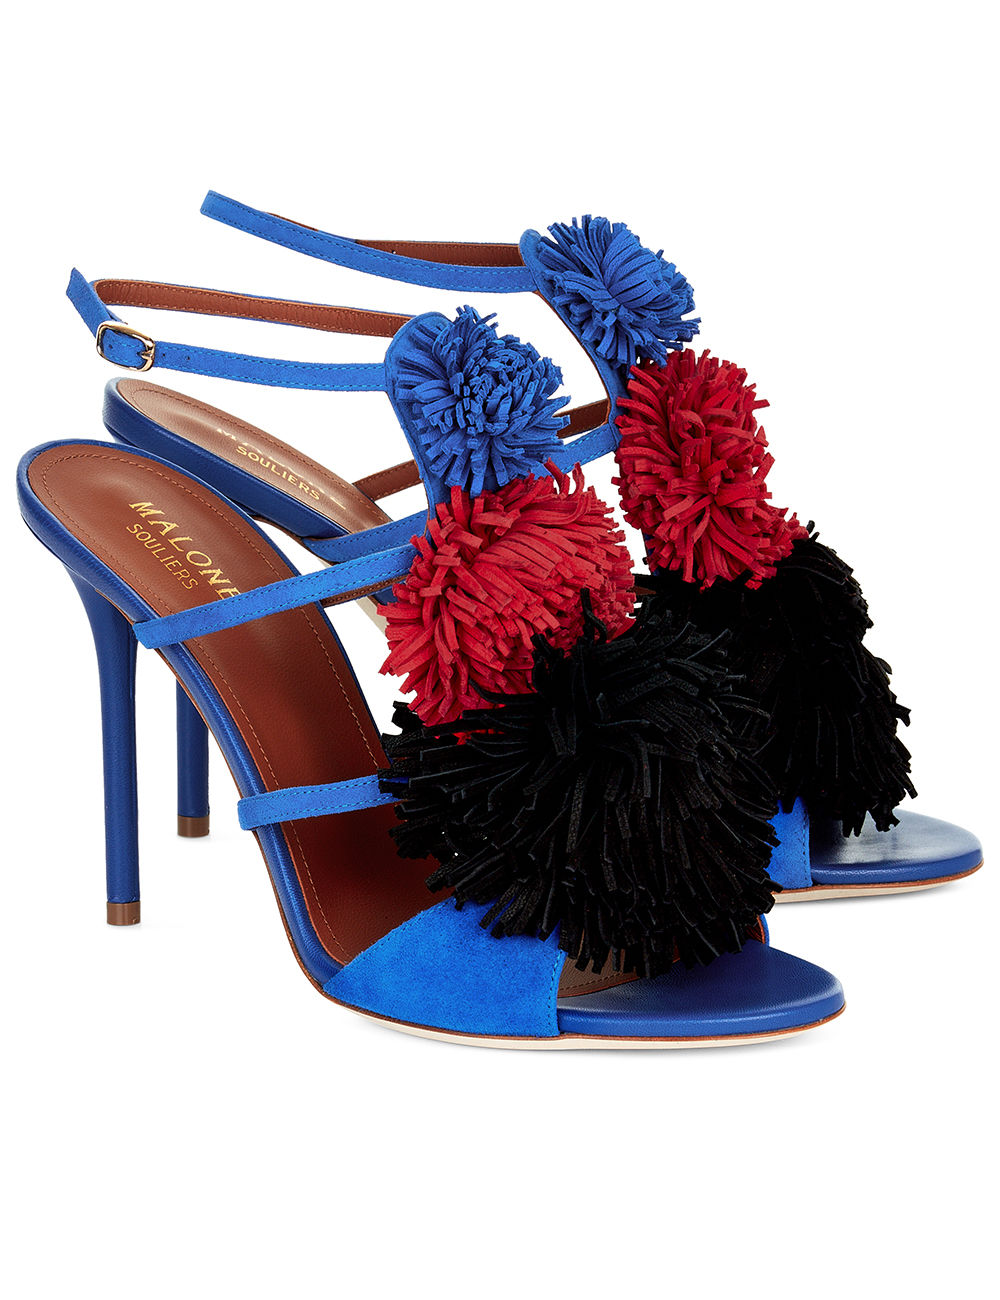 blue 3 aquazzara.jpg